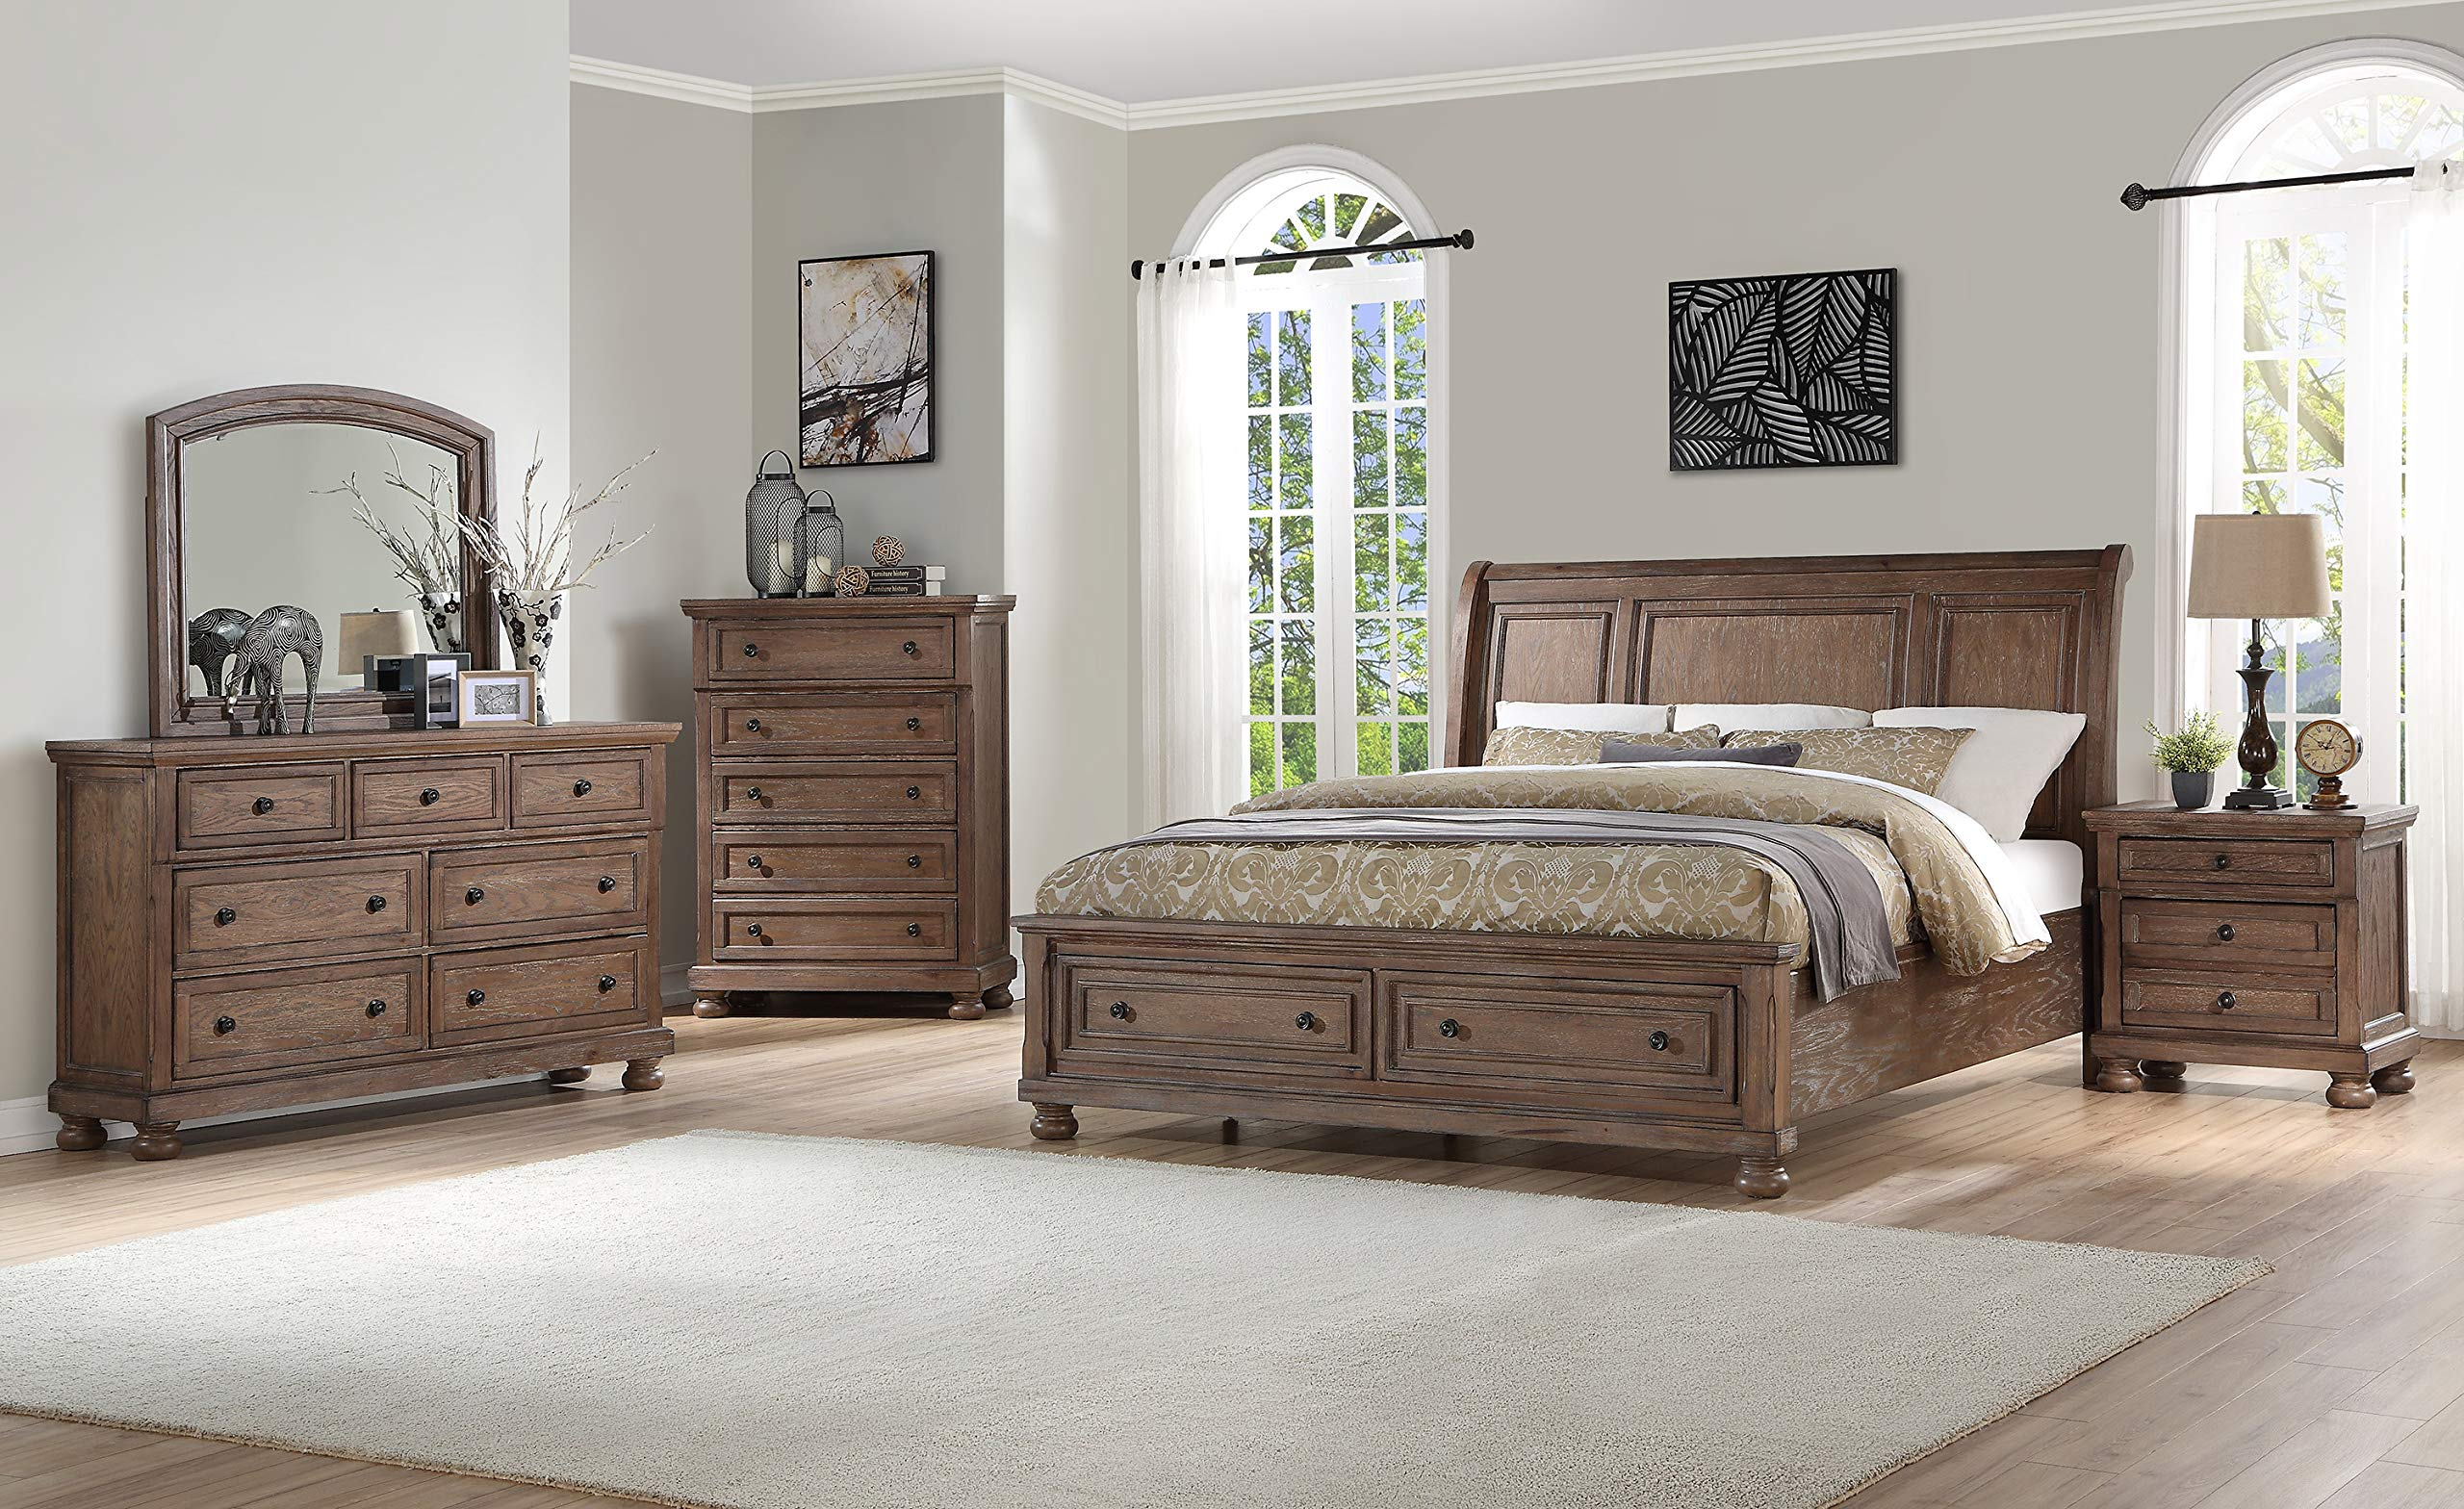 Fortuna Weathered 5 Piece Eastern King Bedroom Set with Chest in Rustic Brown by NCF Furniture